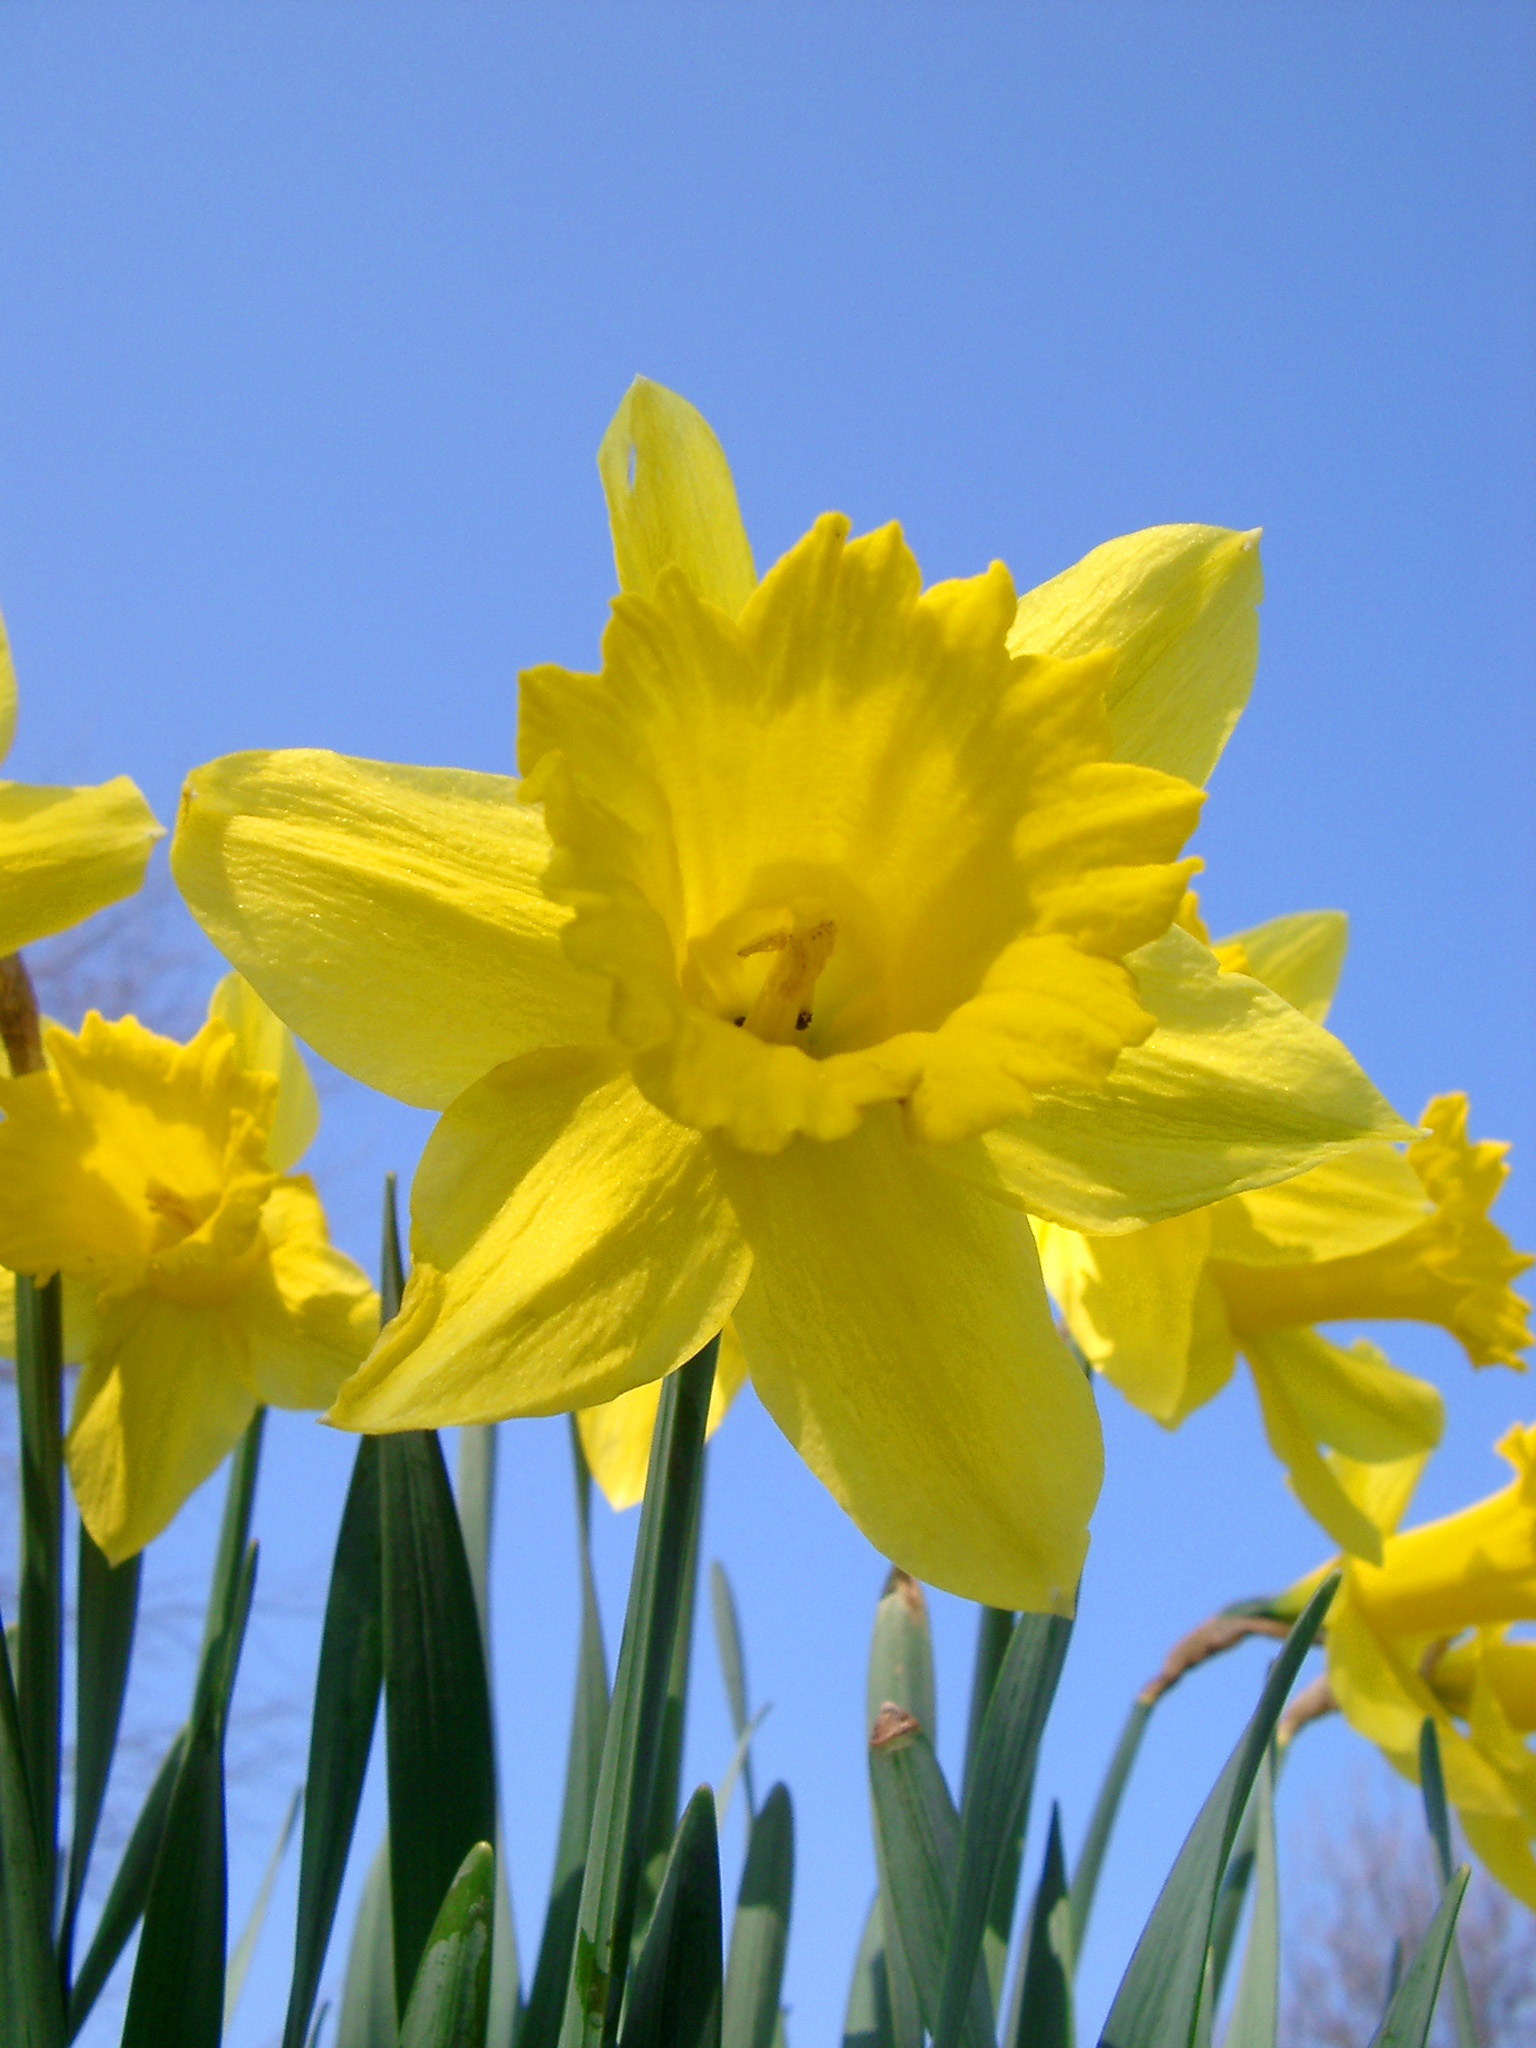 Daffodils Wallpaper Hd Free Stock Photo Of Bright Yellow Daffodils Photoeverywhere